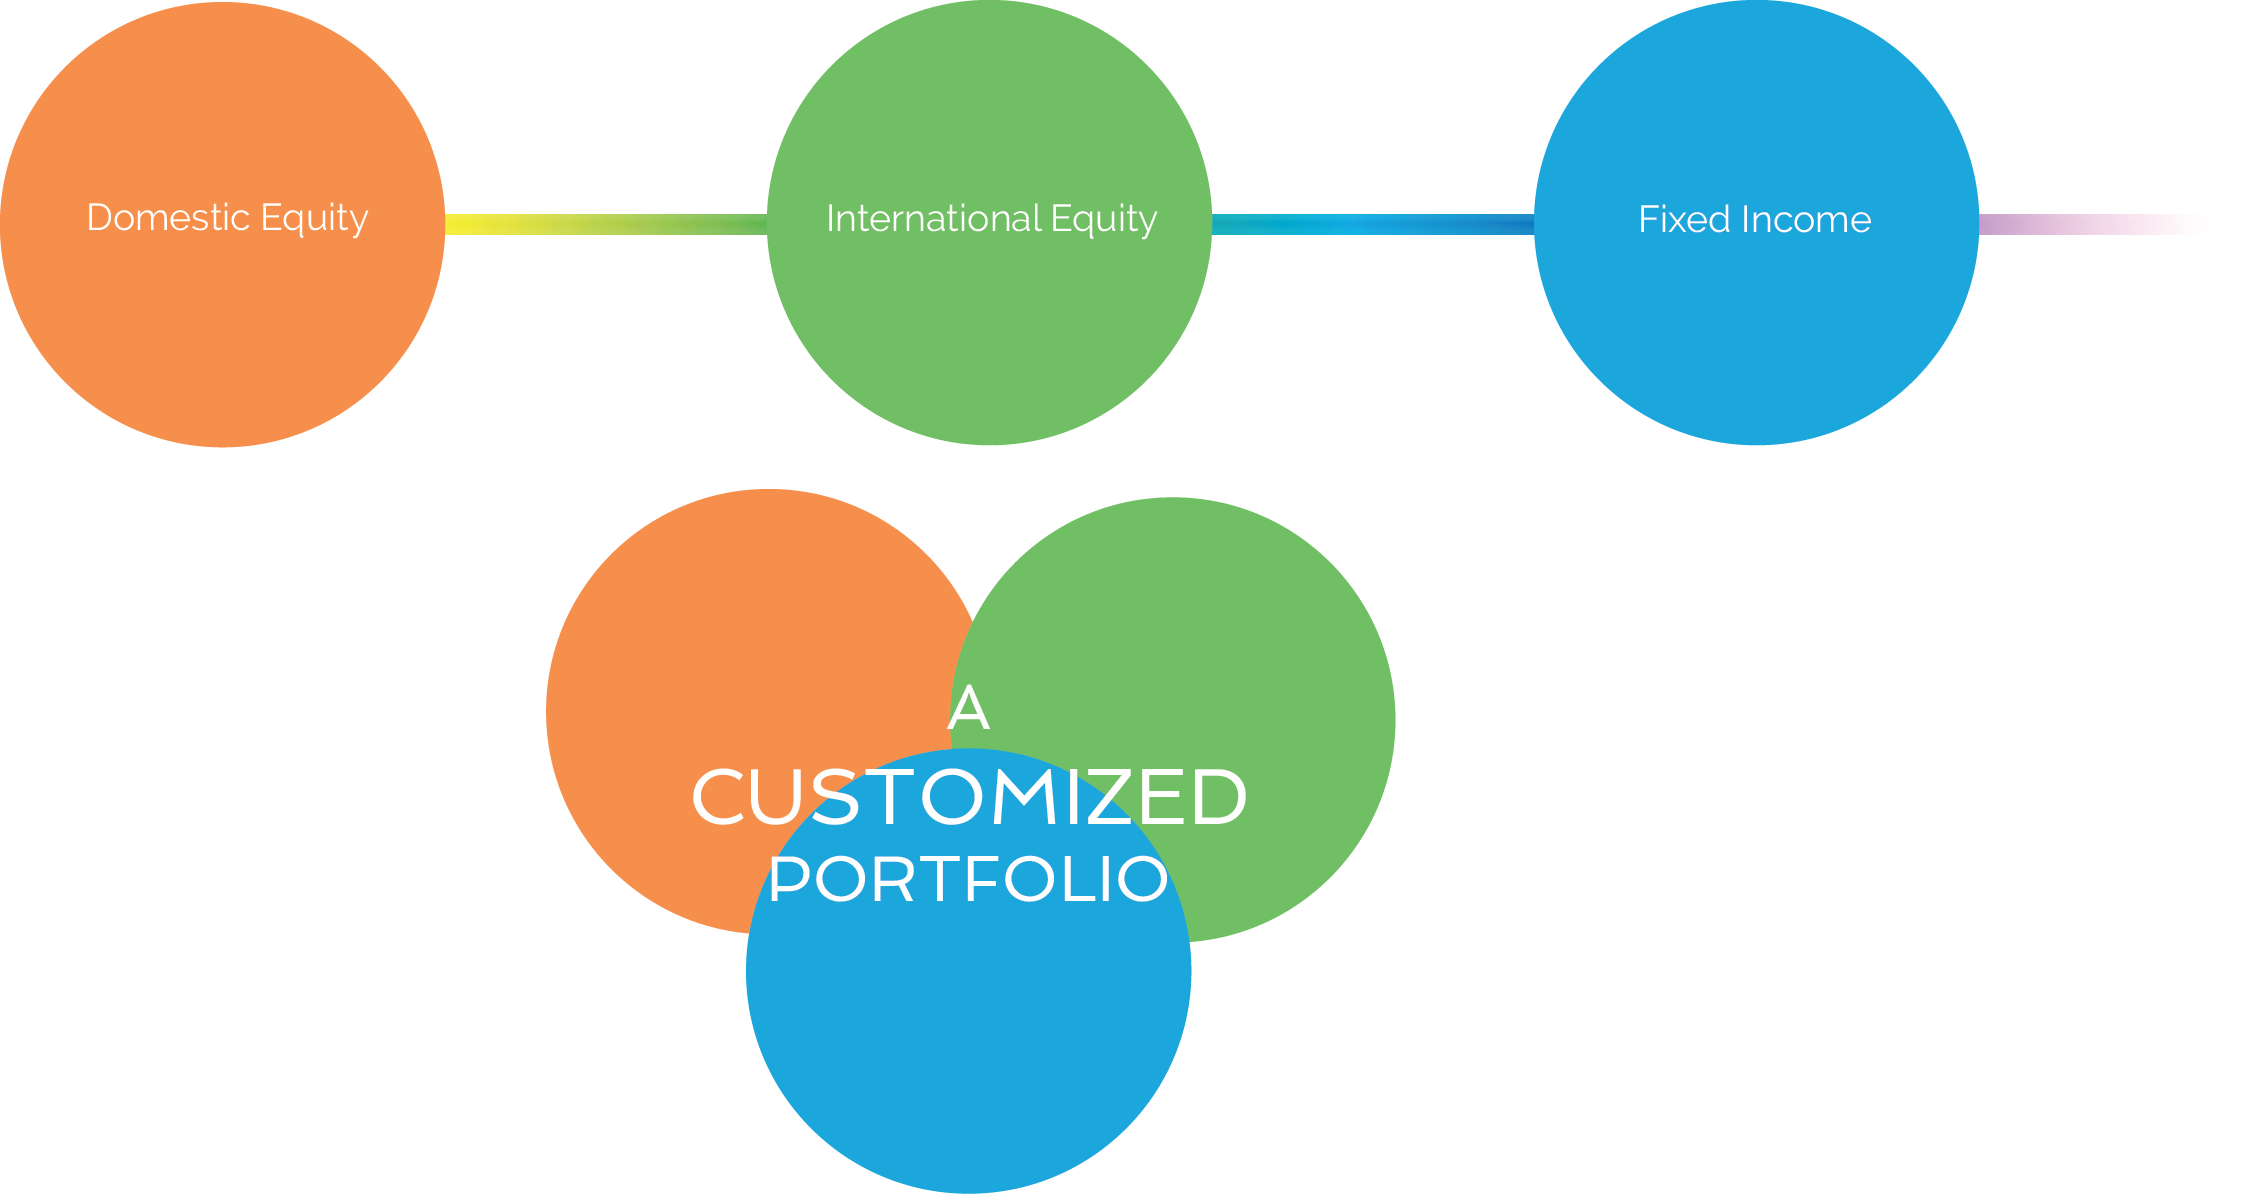 Customized Portfolio